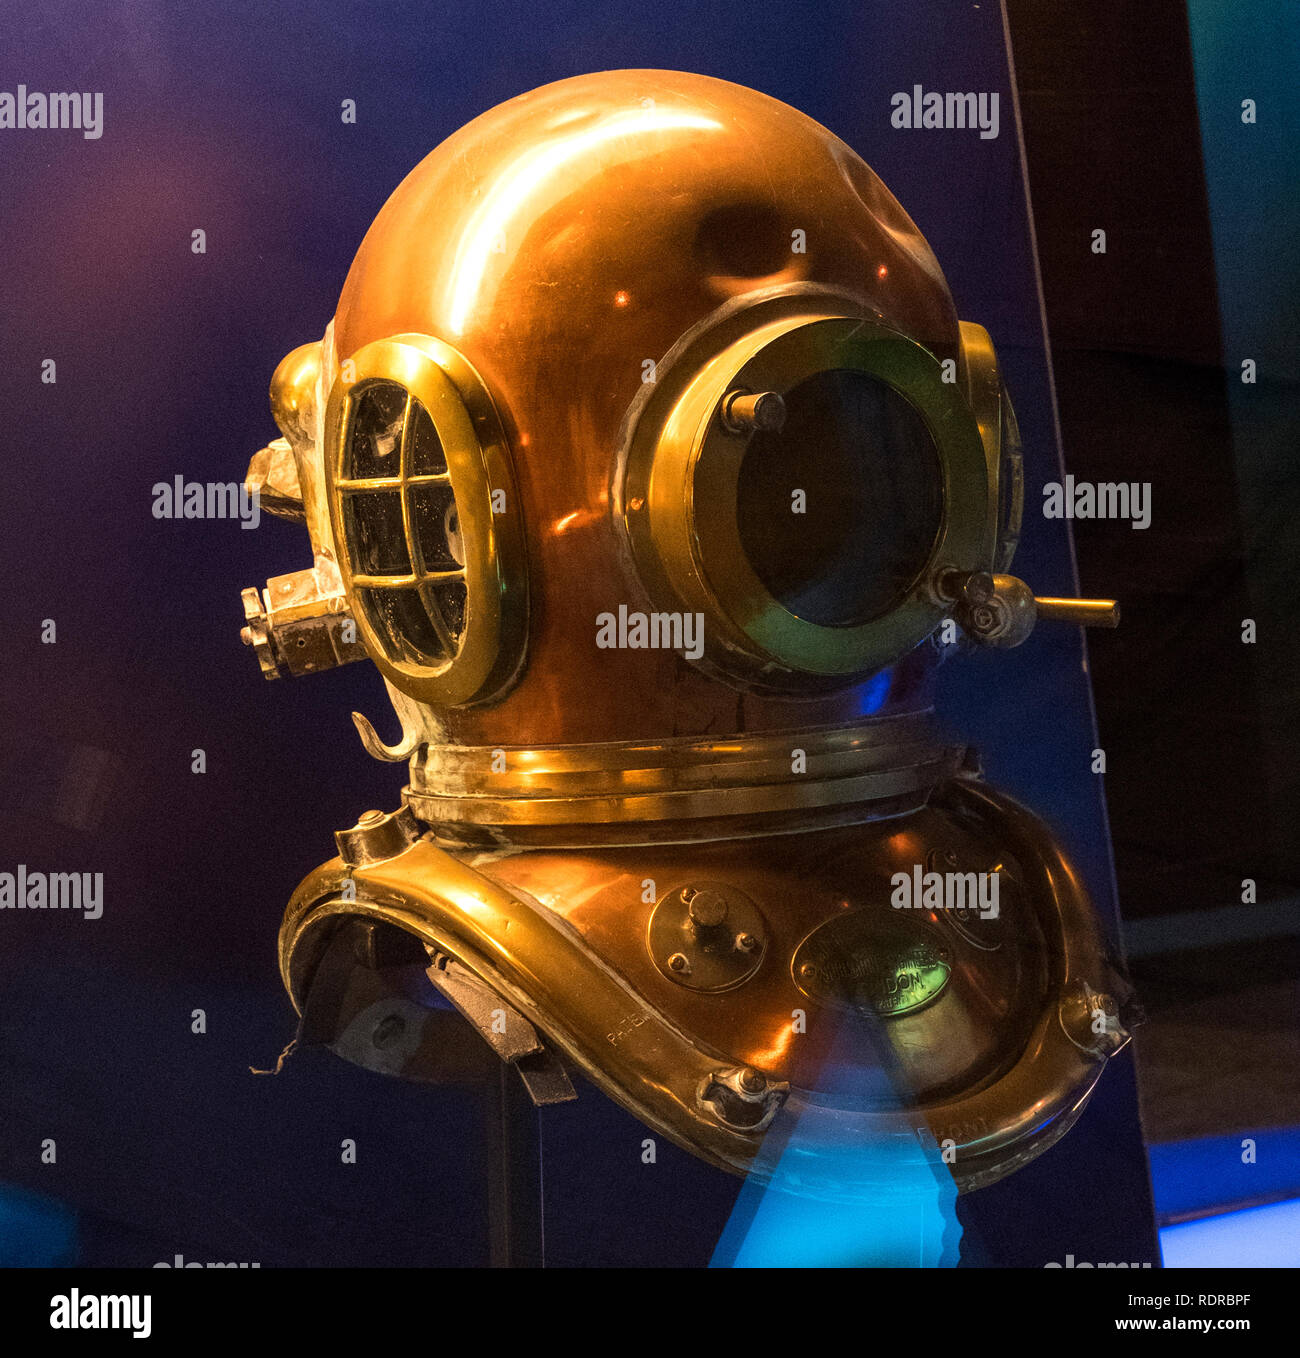 Cherbourg, France - August 26, 2018: Copper diving helmet in the maritime museum La Cite de La Mer or City of the Sea in Cherbourg, Normandy, France Stock Photo